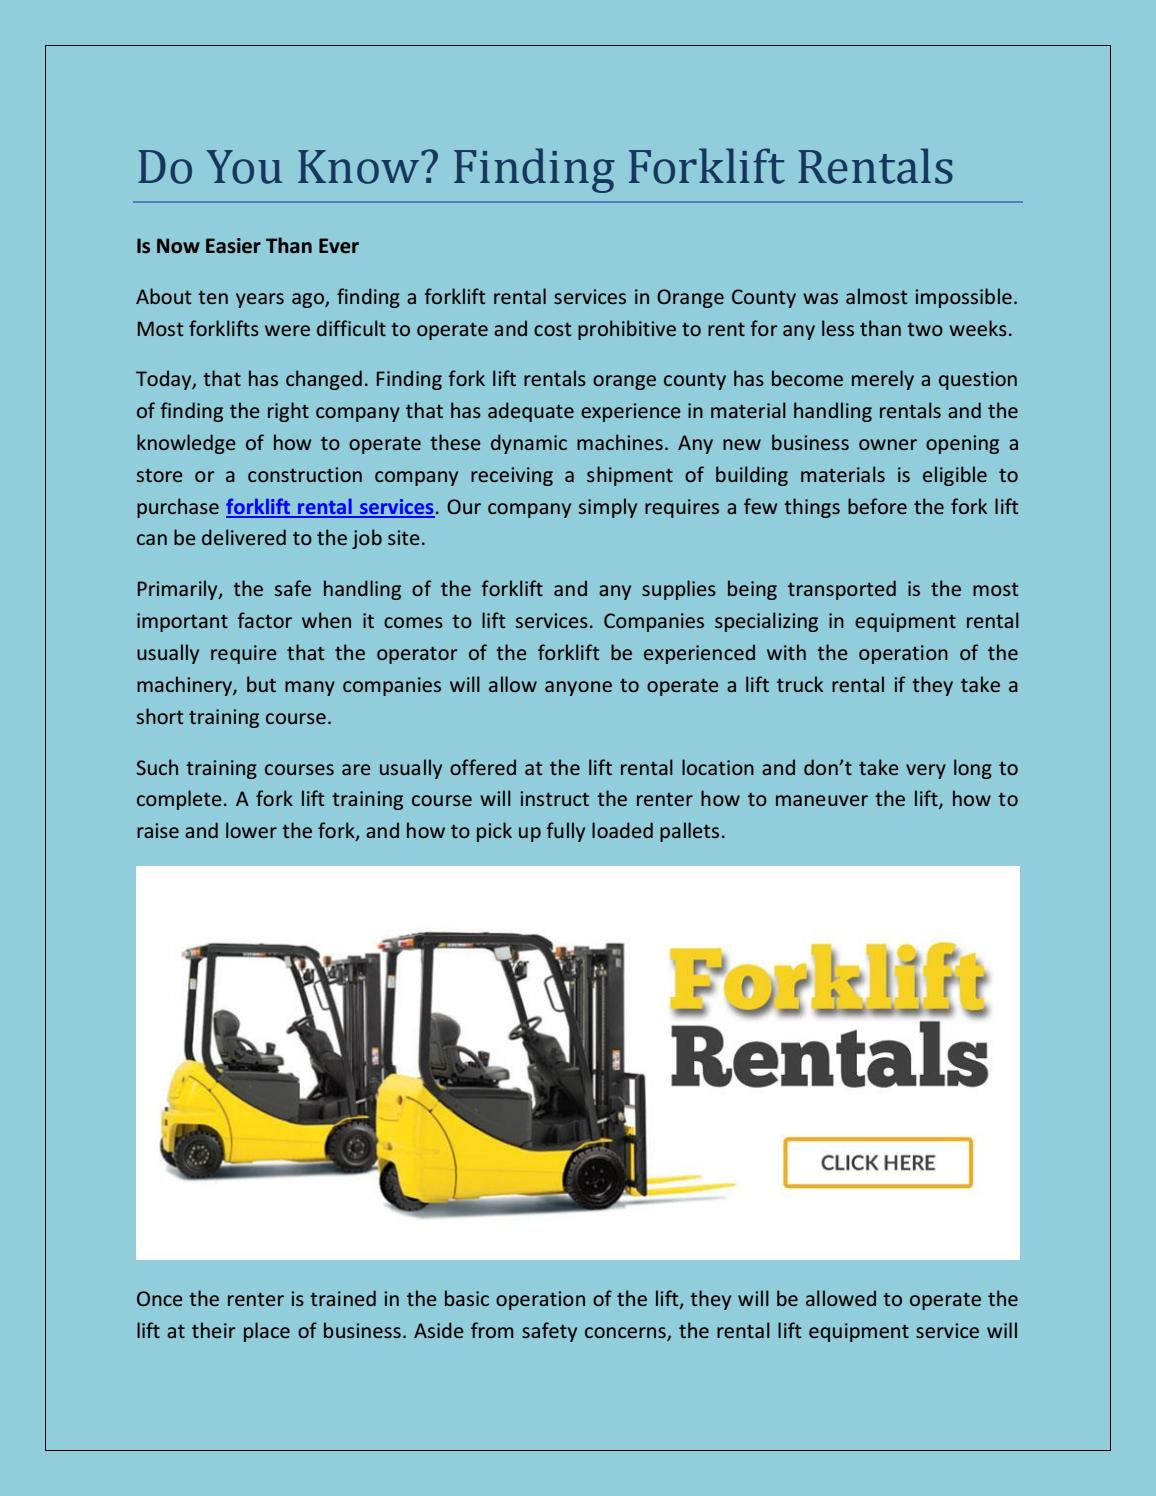 Do you know finding forklift rentals by bigjoeliftca - issuu